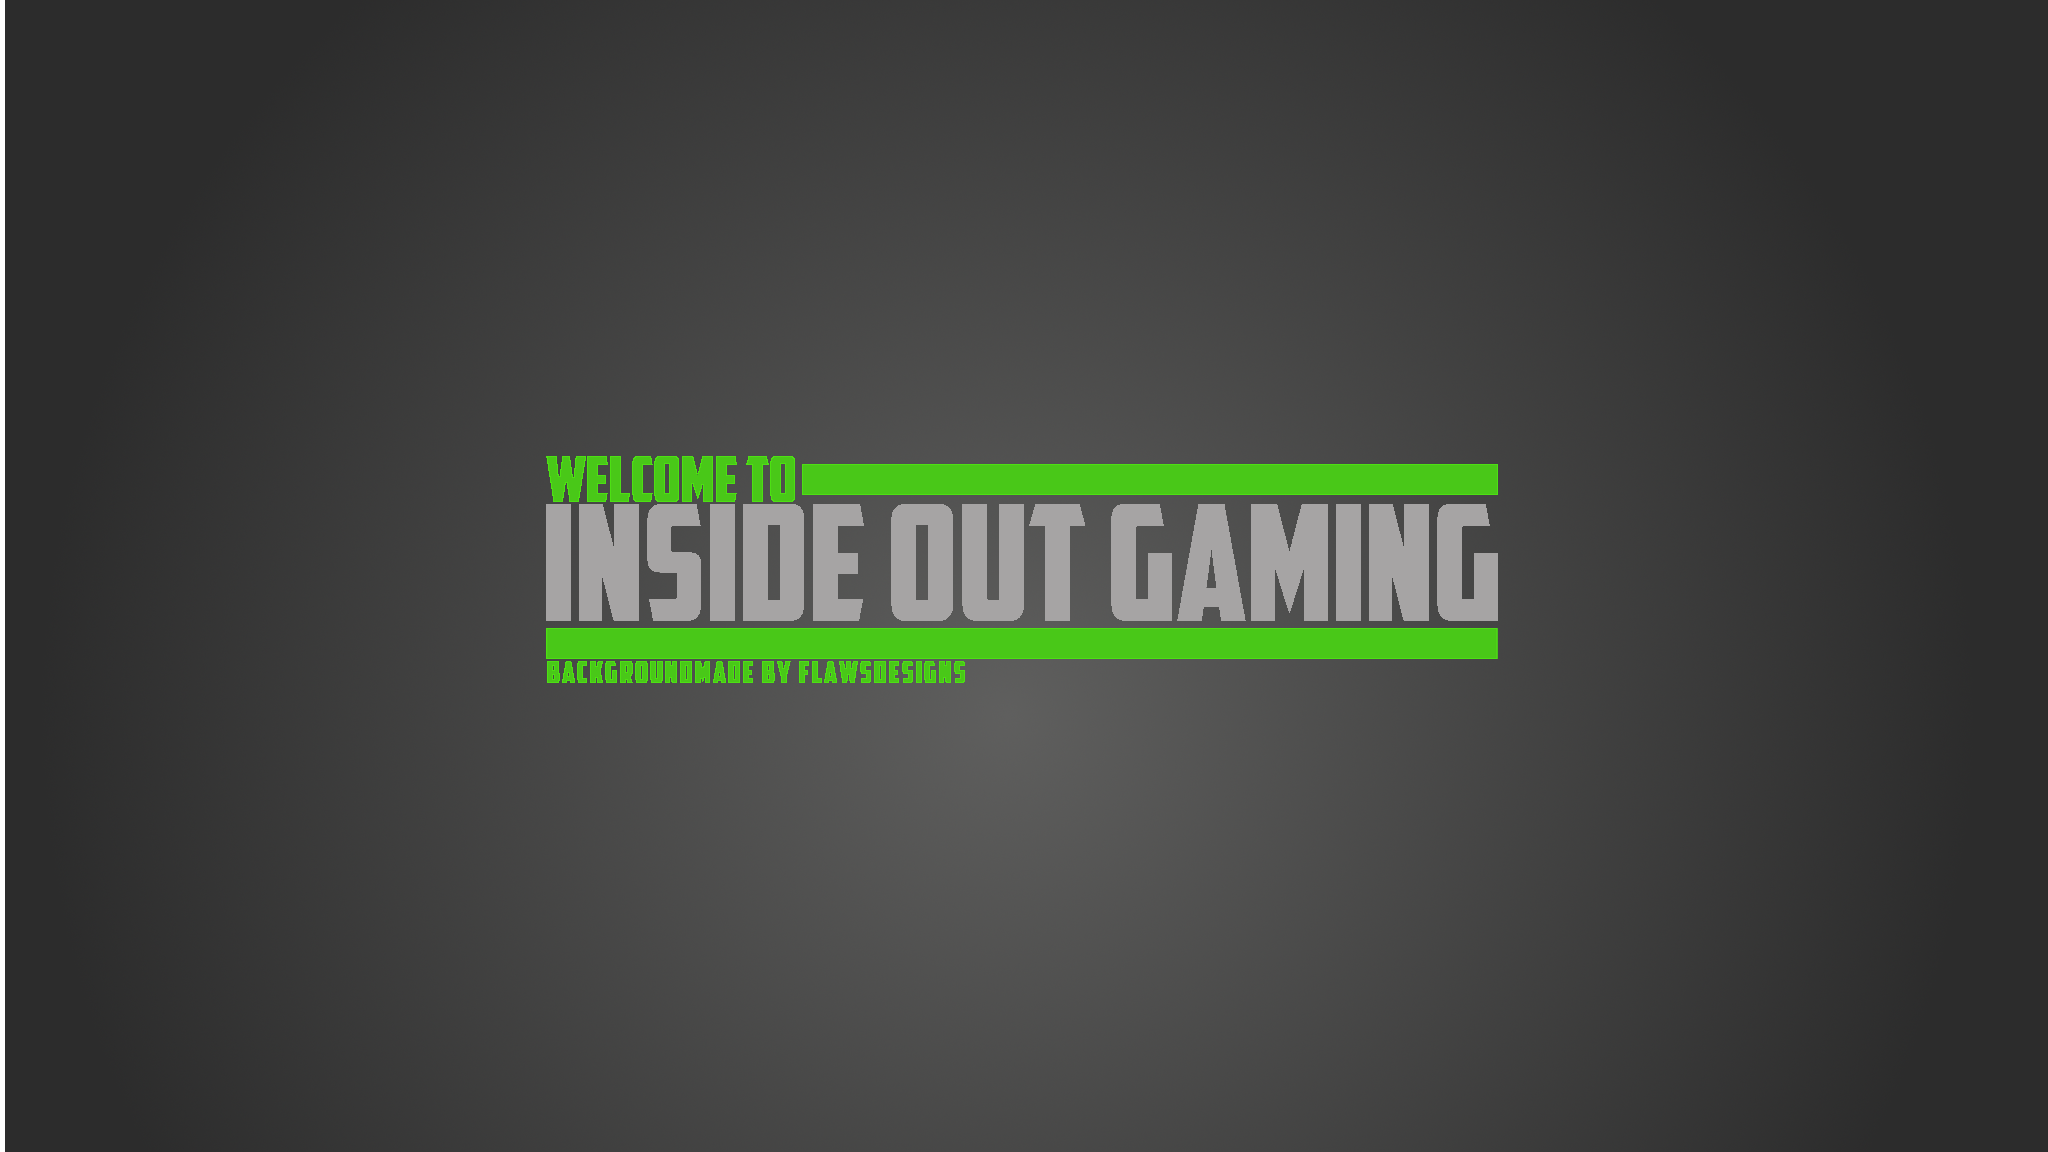 insideoutgaming youtube background by flawsdesigns on